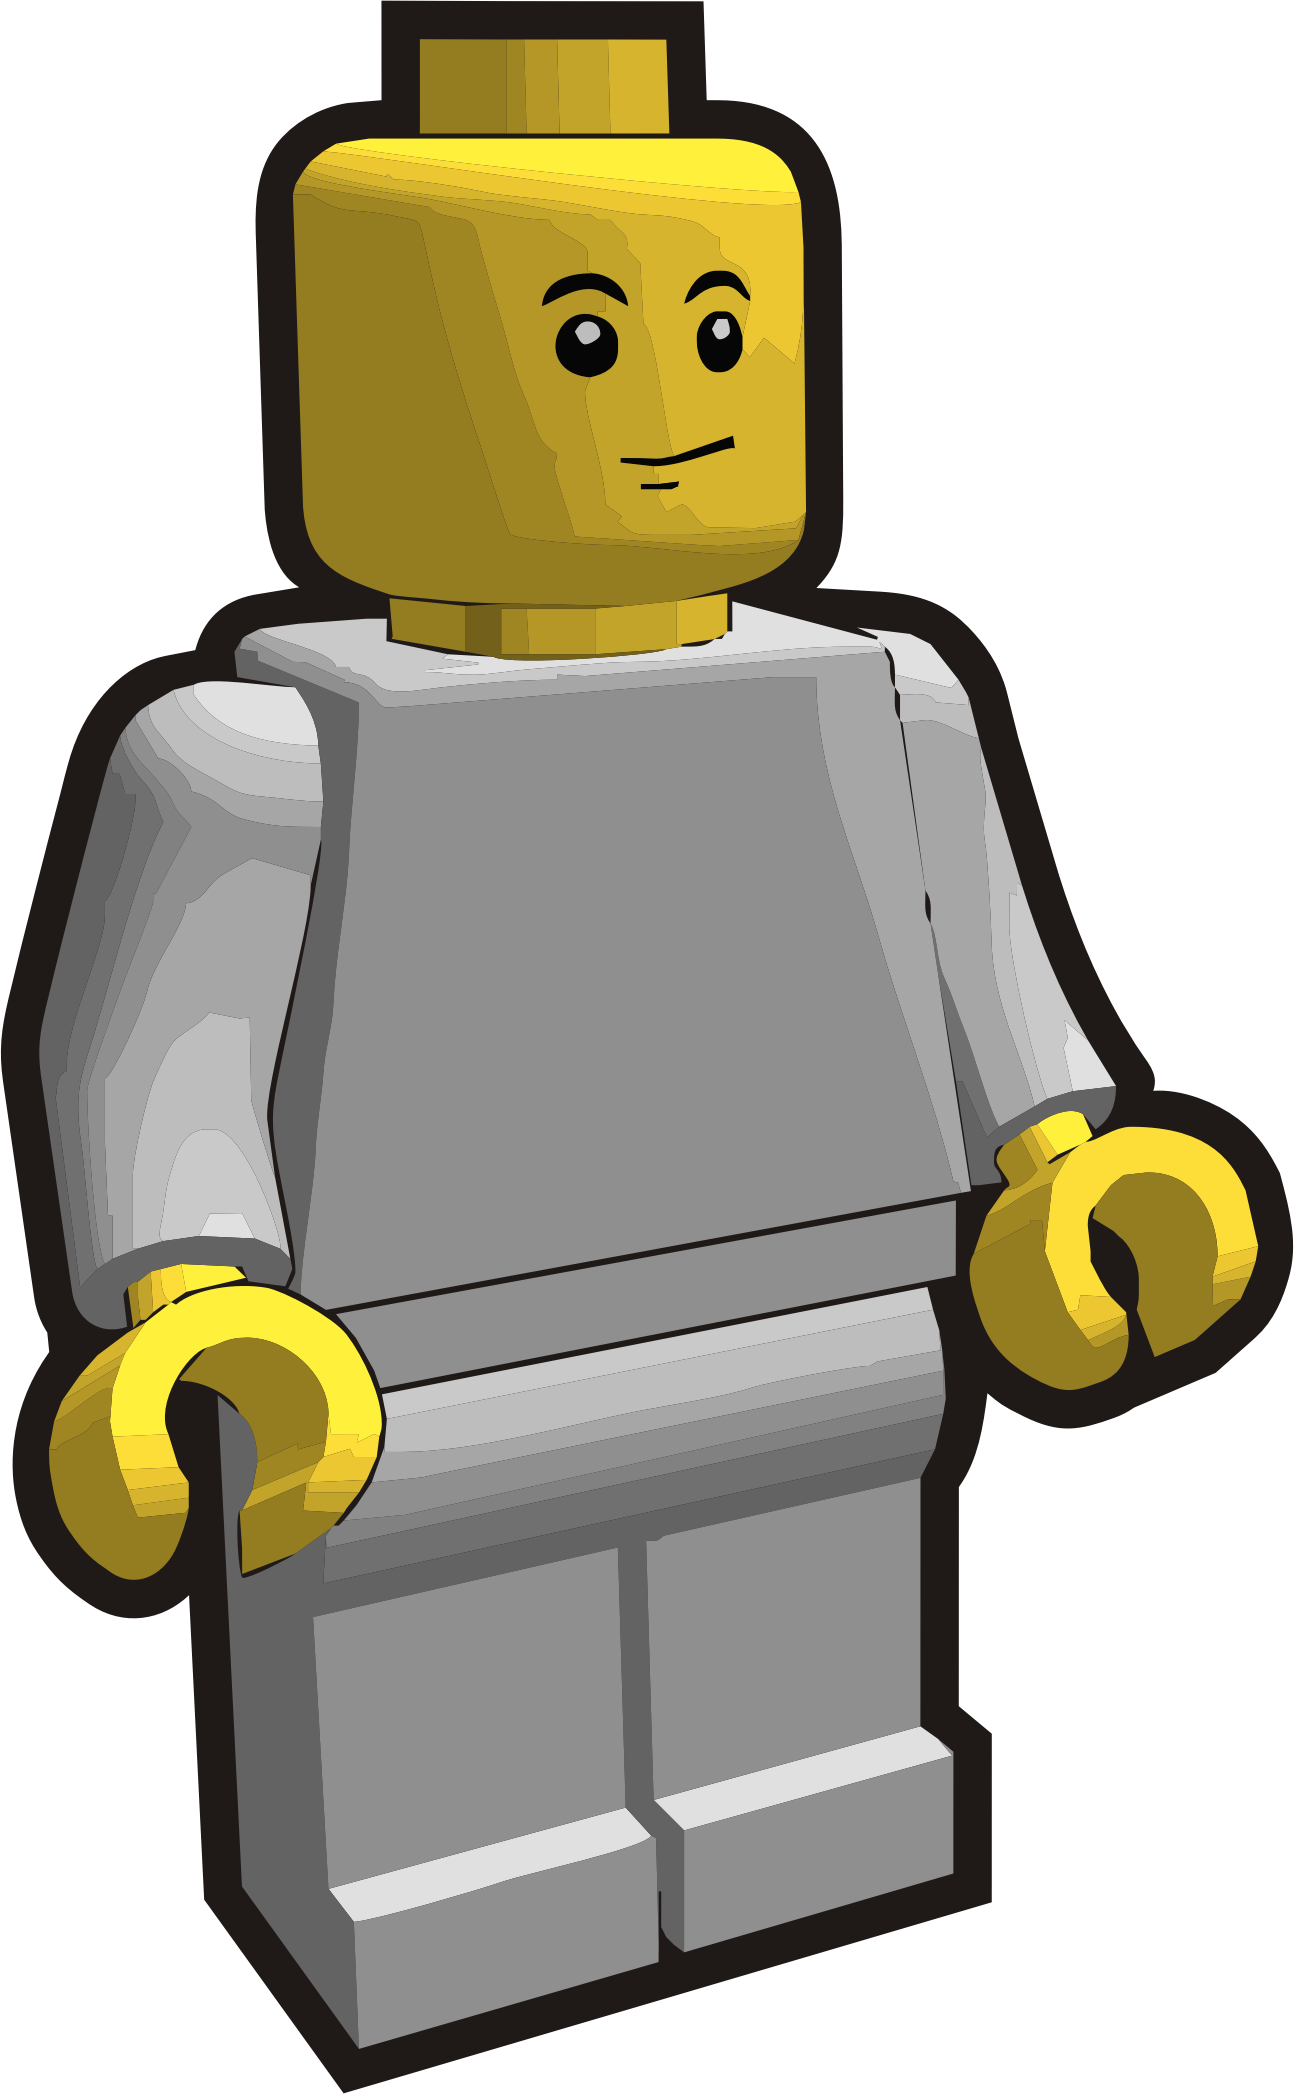 Clip is a Brick - Minifig 6 by Vanja